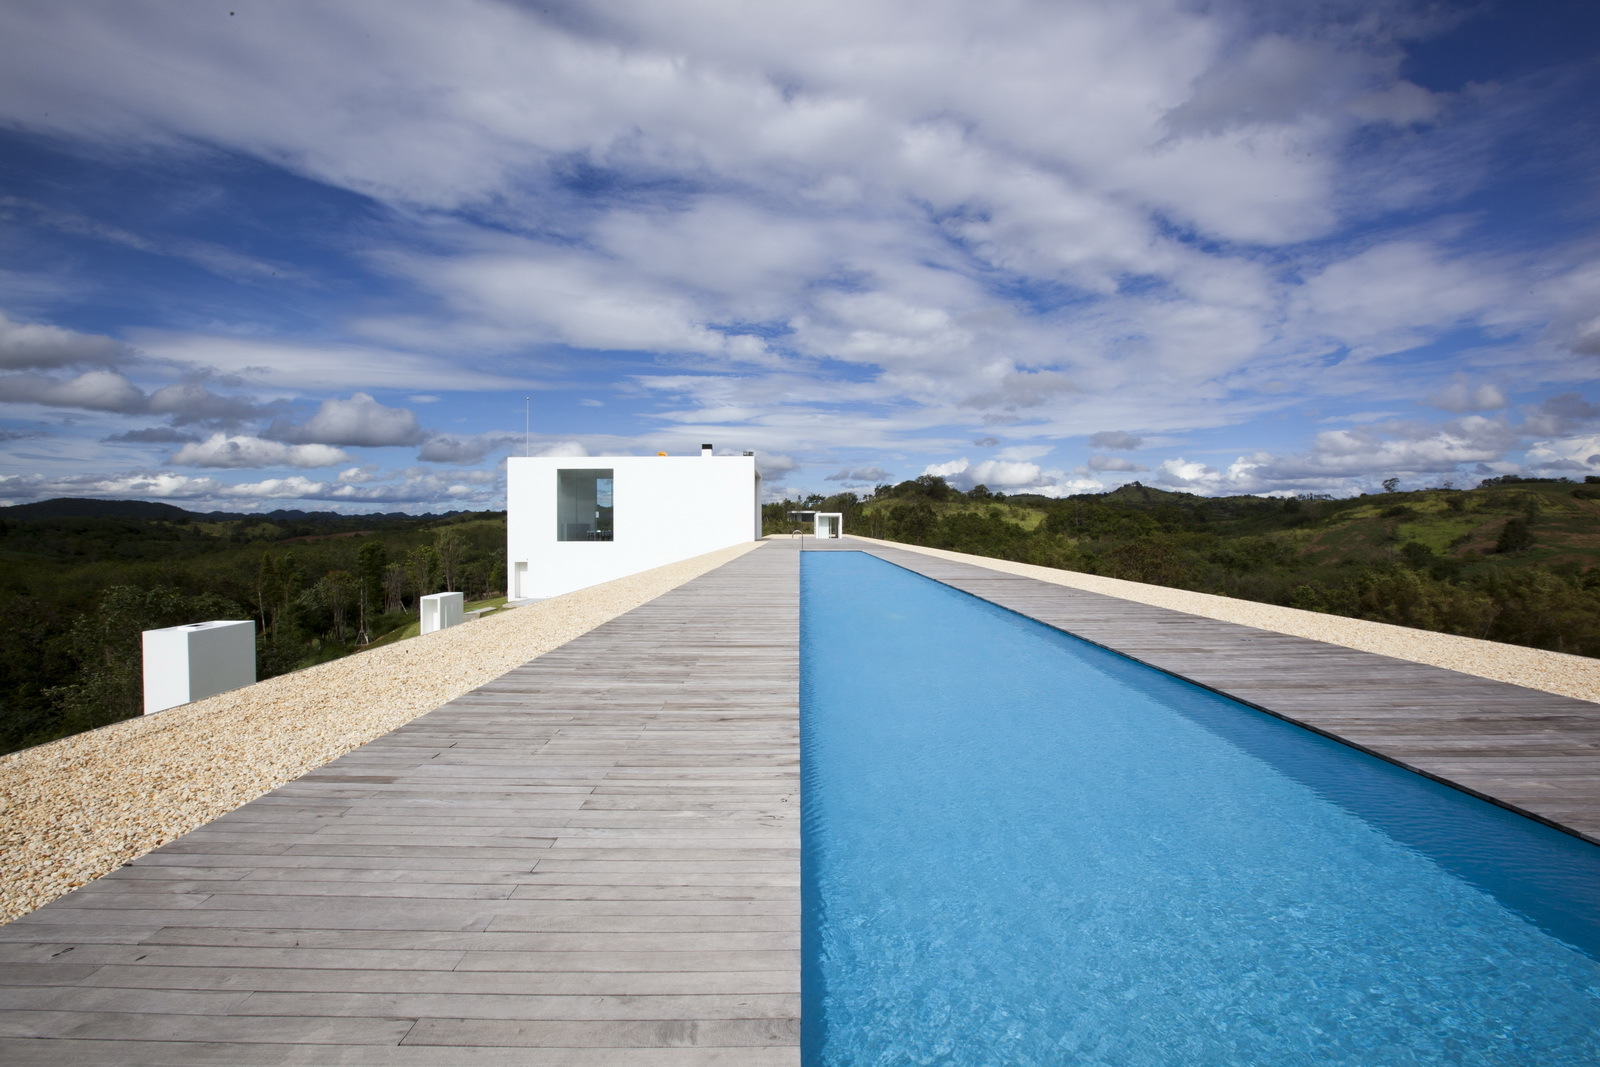 The White House Swimming Pool Small Modern And Minimalist Houses